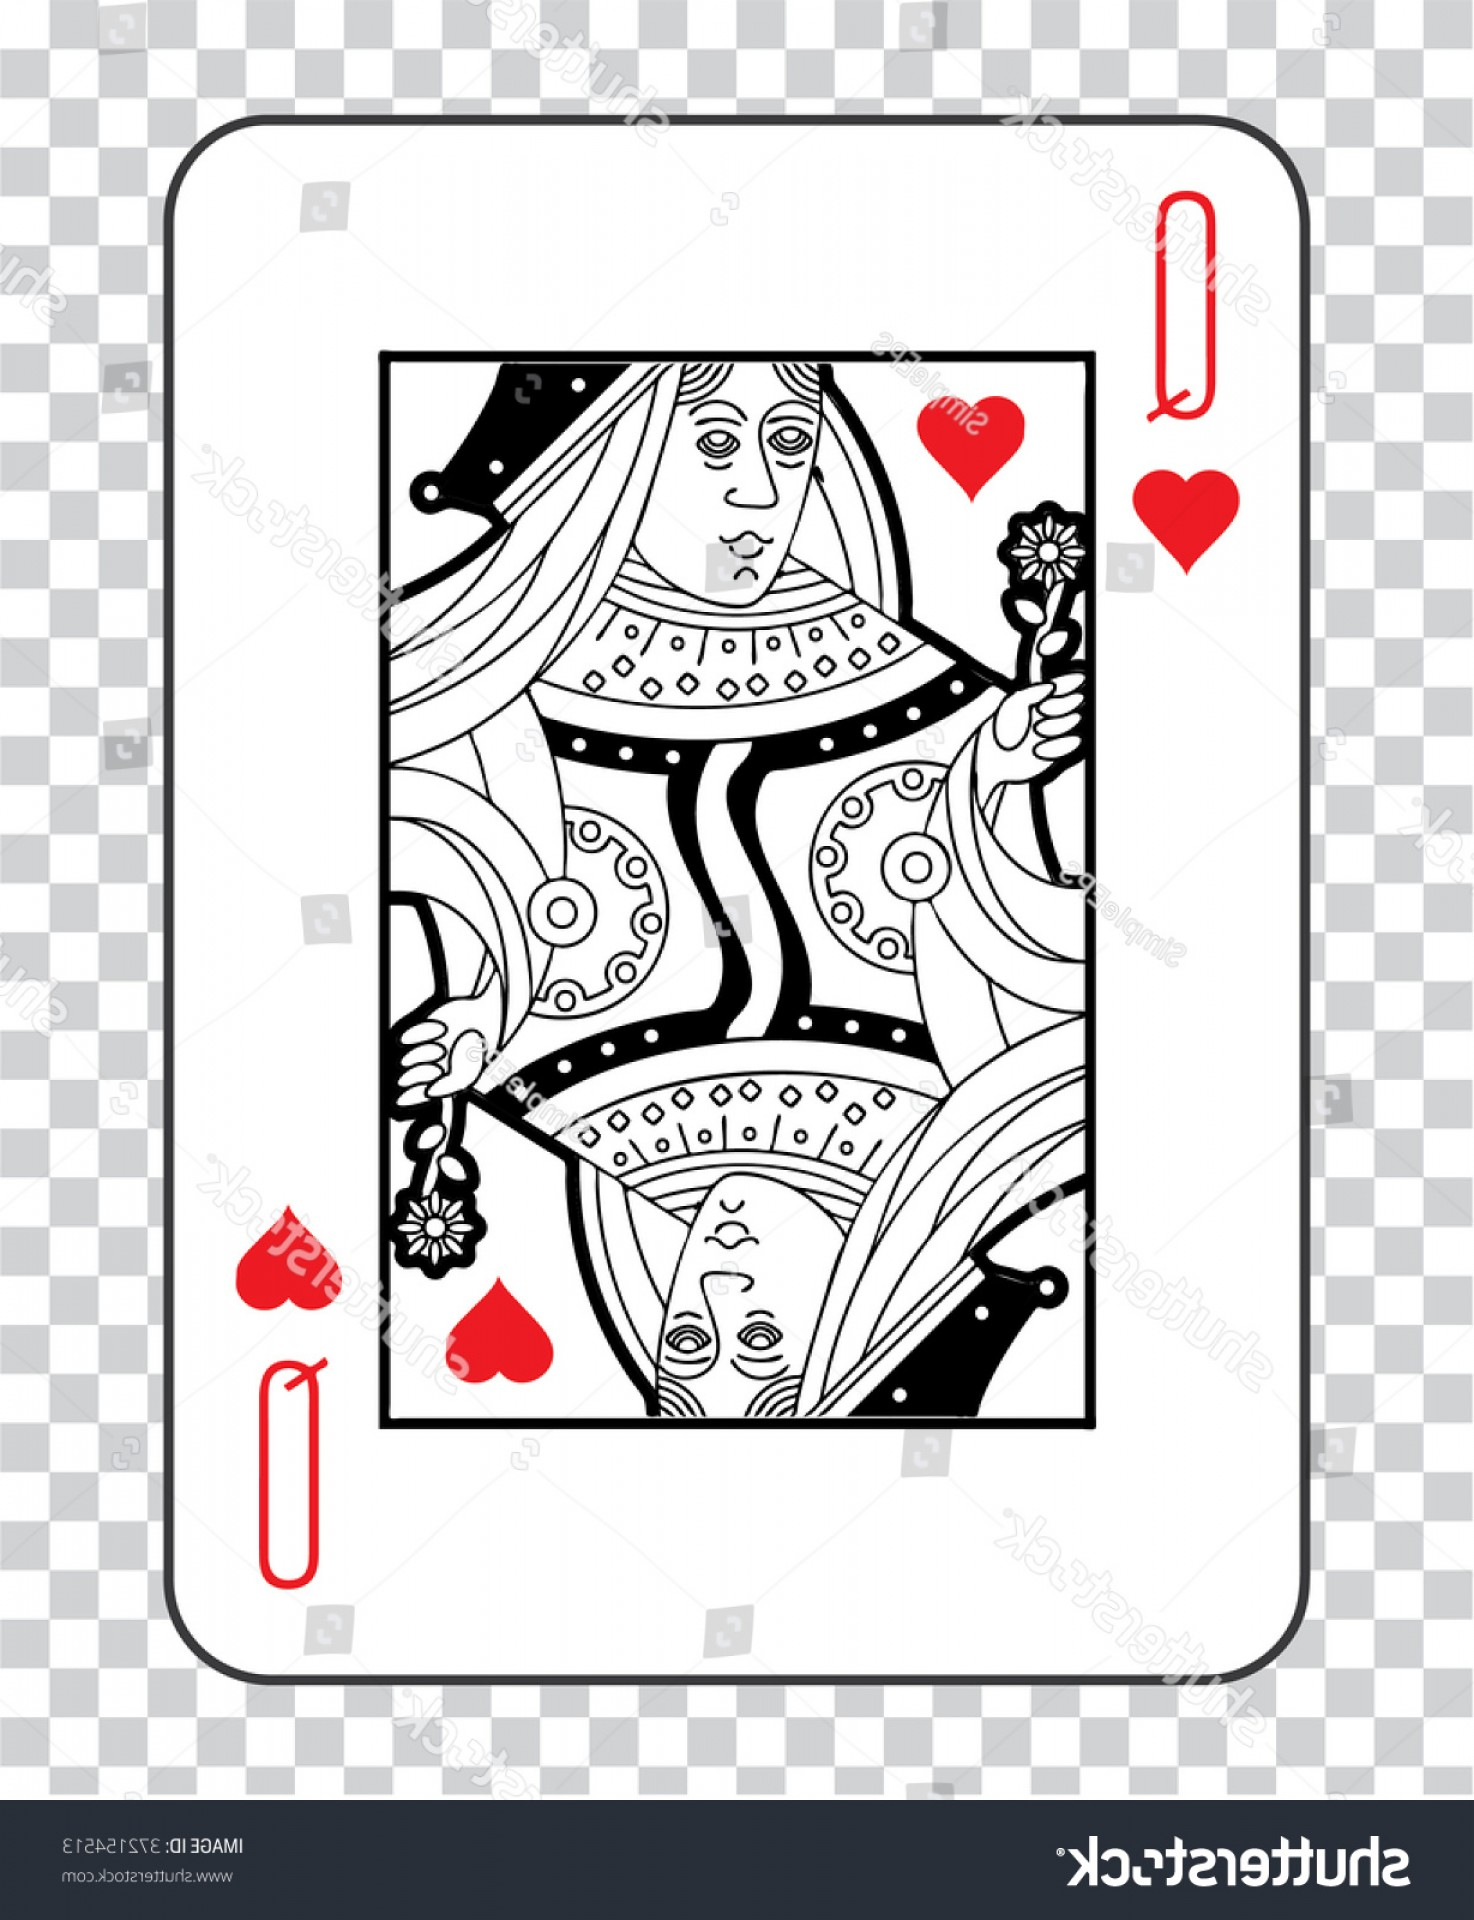 Single Playing Card Vector: Single Playing Cards Transparent Background Poker